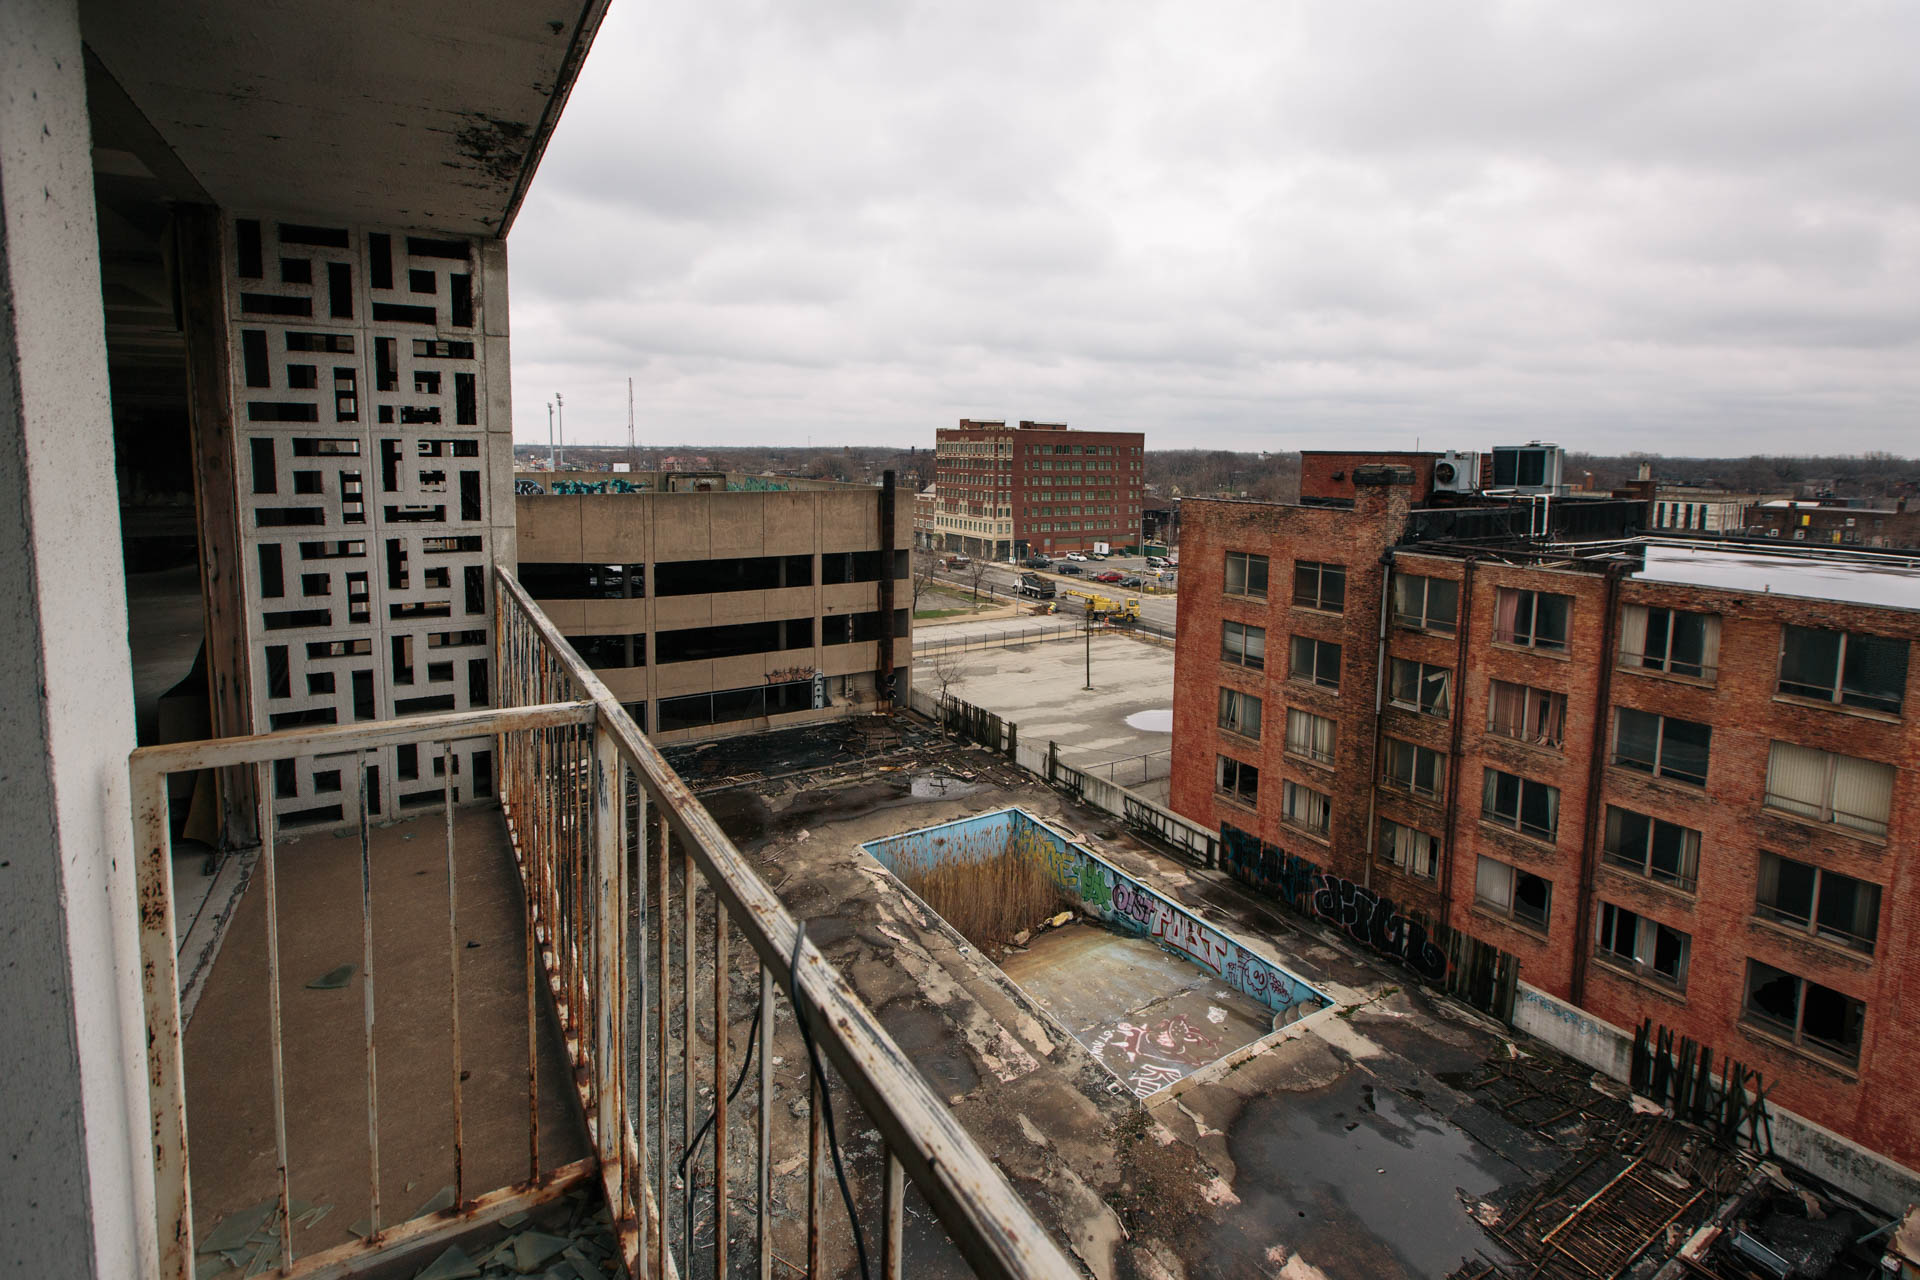 overgrown-sheraton-hotel-rooftop-pool-gary-in